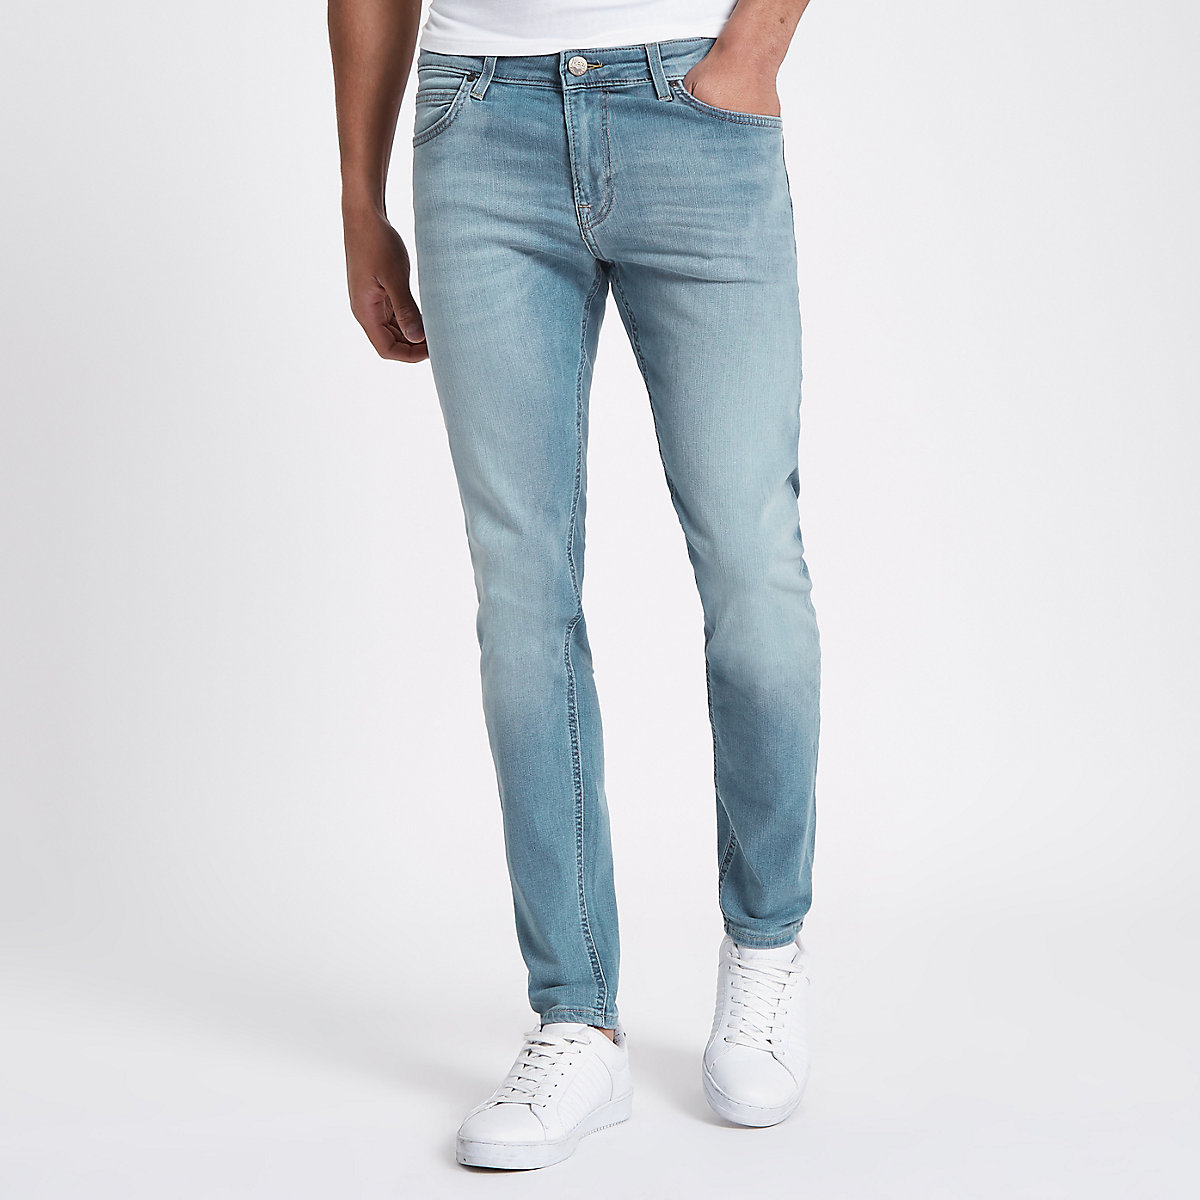 Lee light blue skinny fit Malone jeans